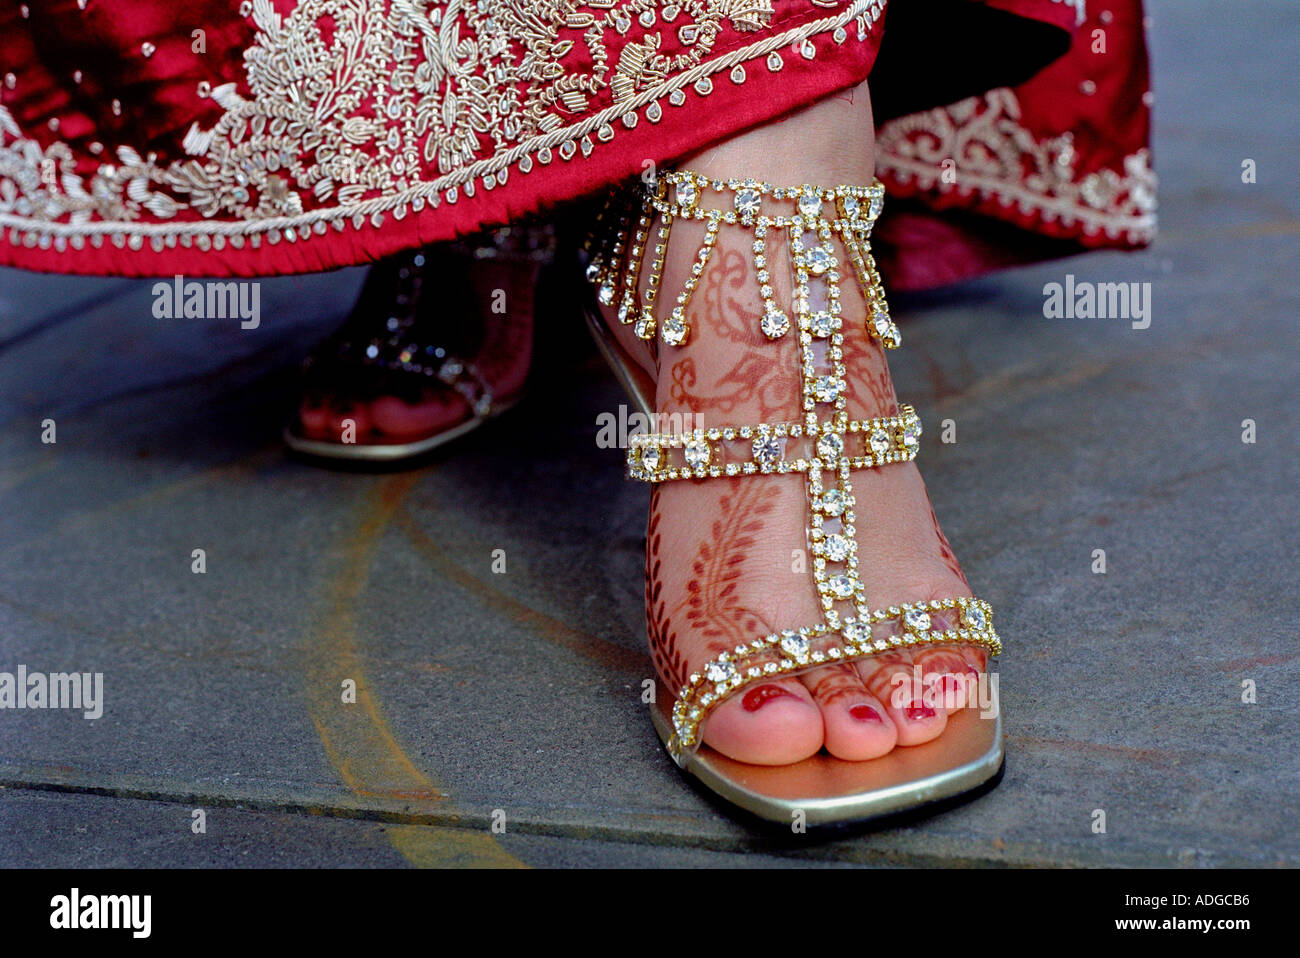 Indian bride with henna design on her feet. - Stock Image